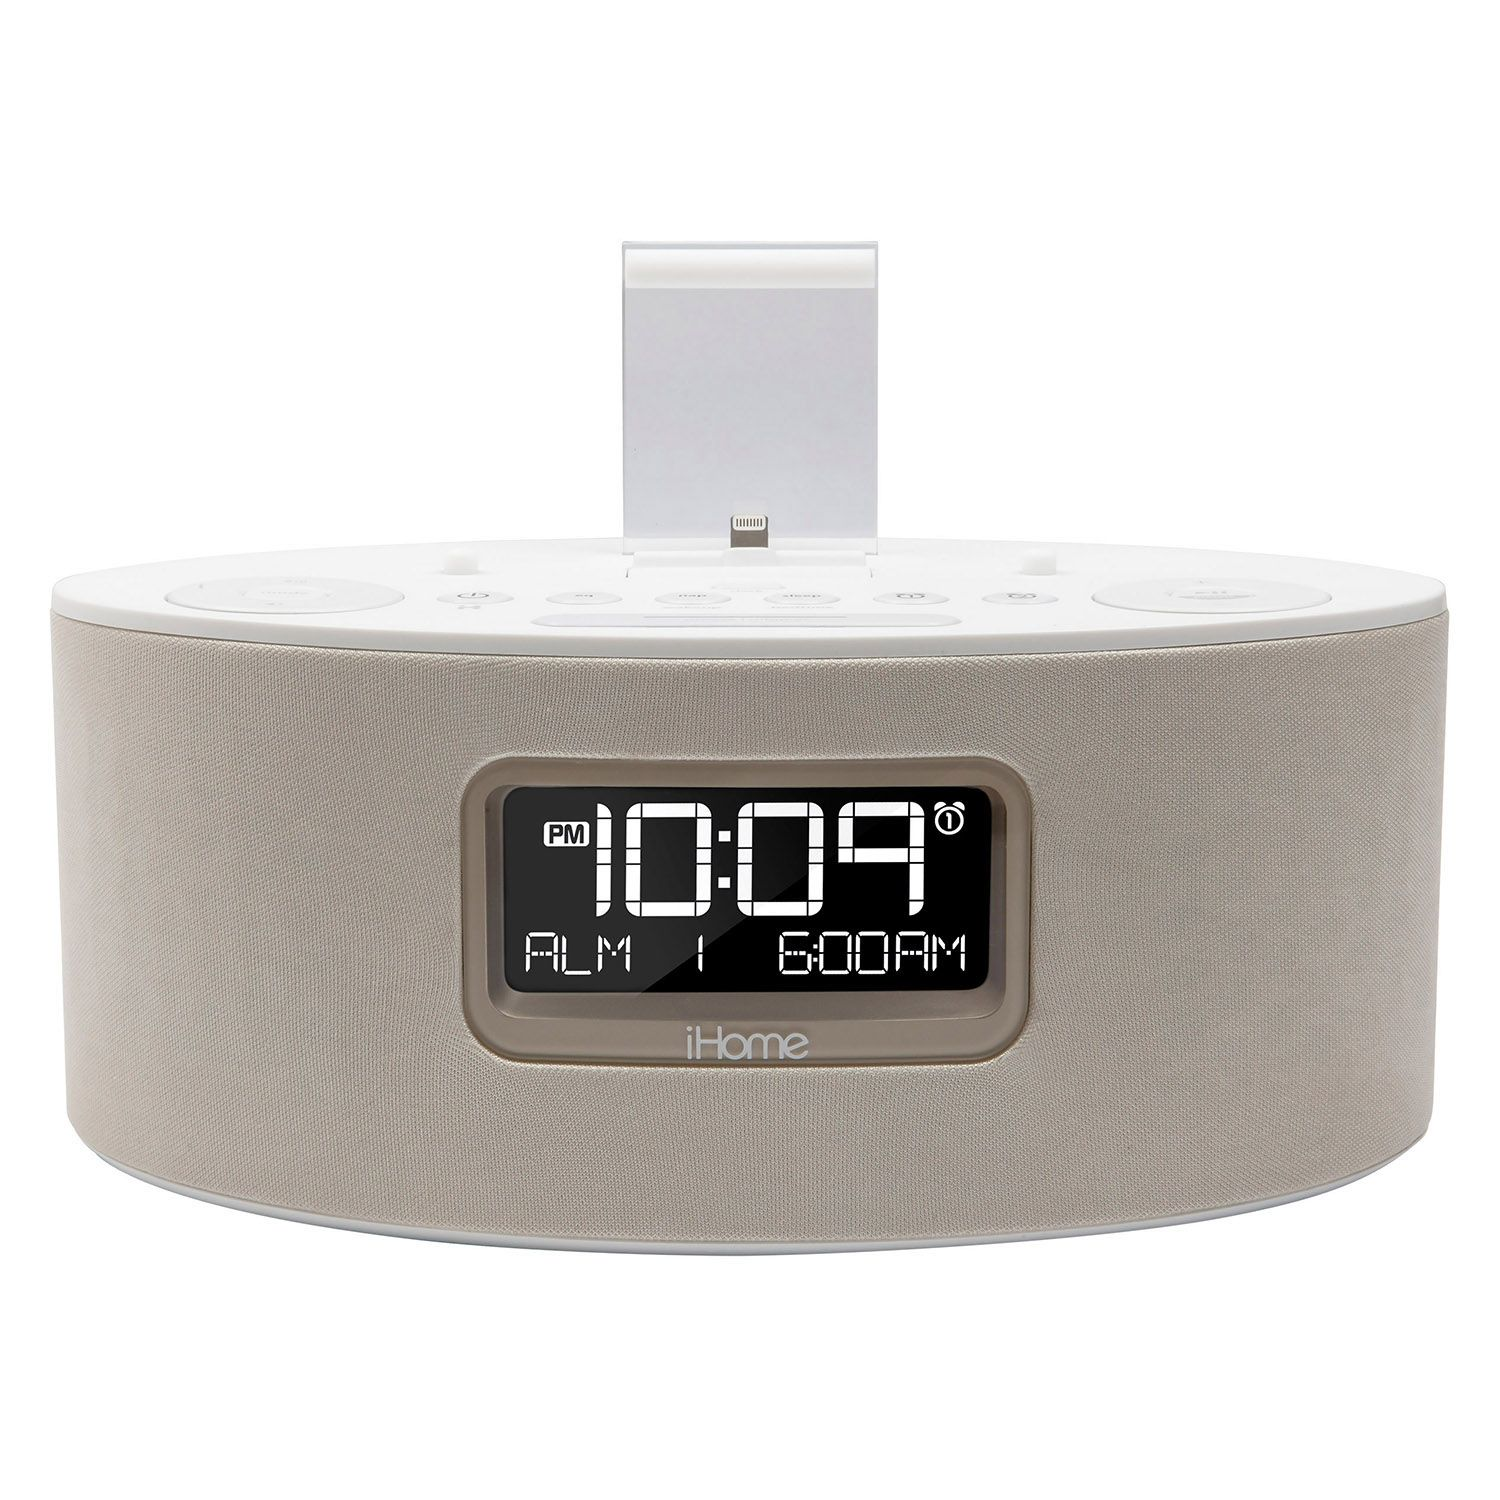 ihome idl46 ipad iphone ipod fm stereo alarm clock radio